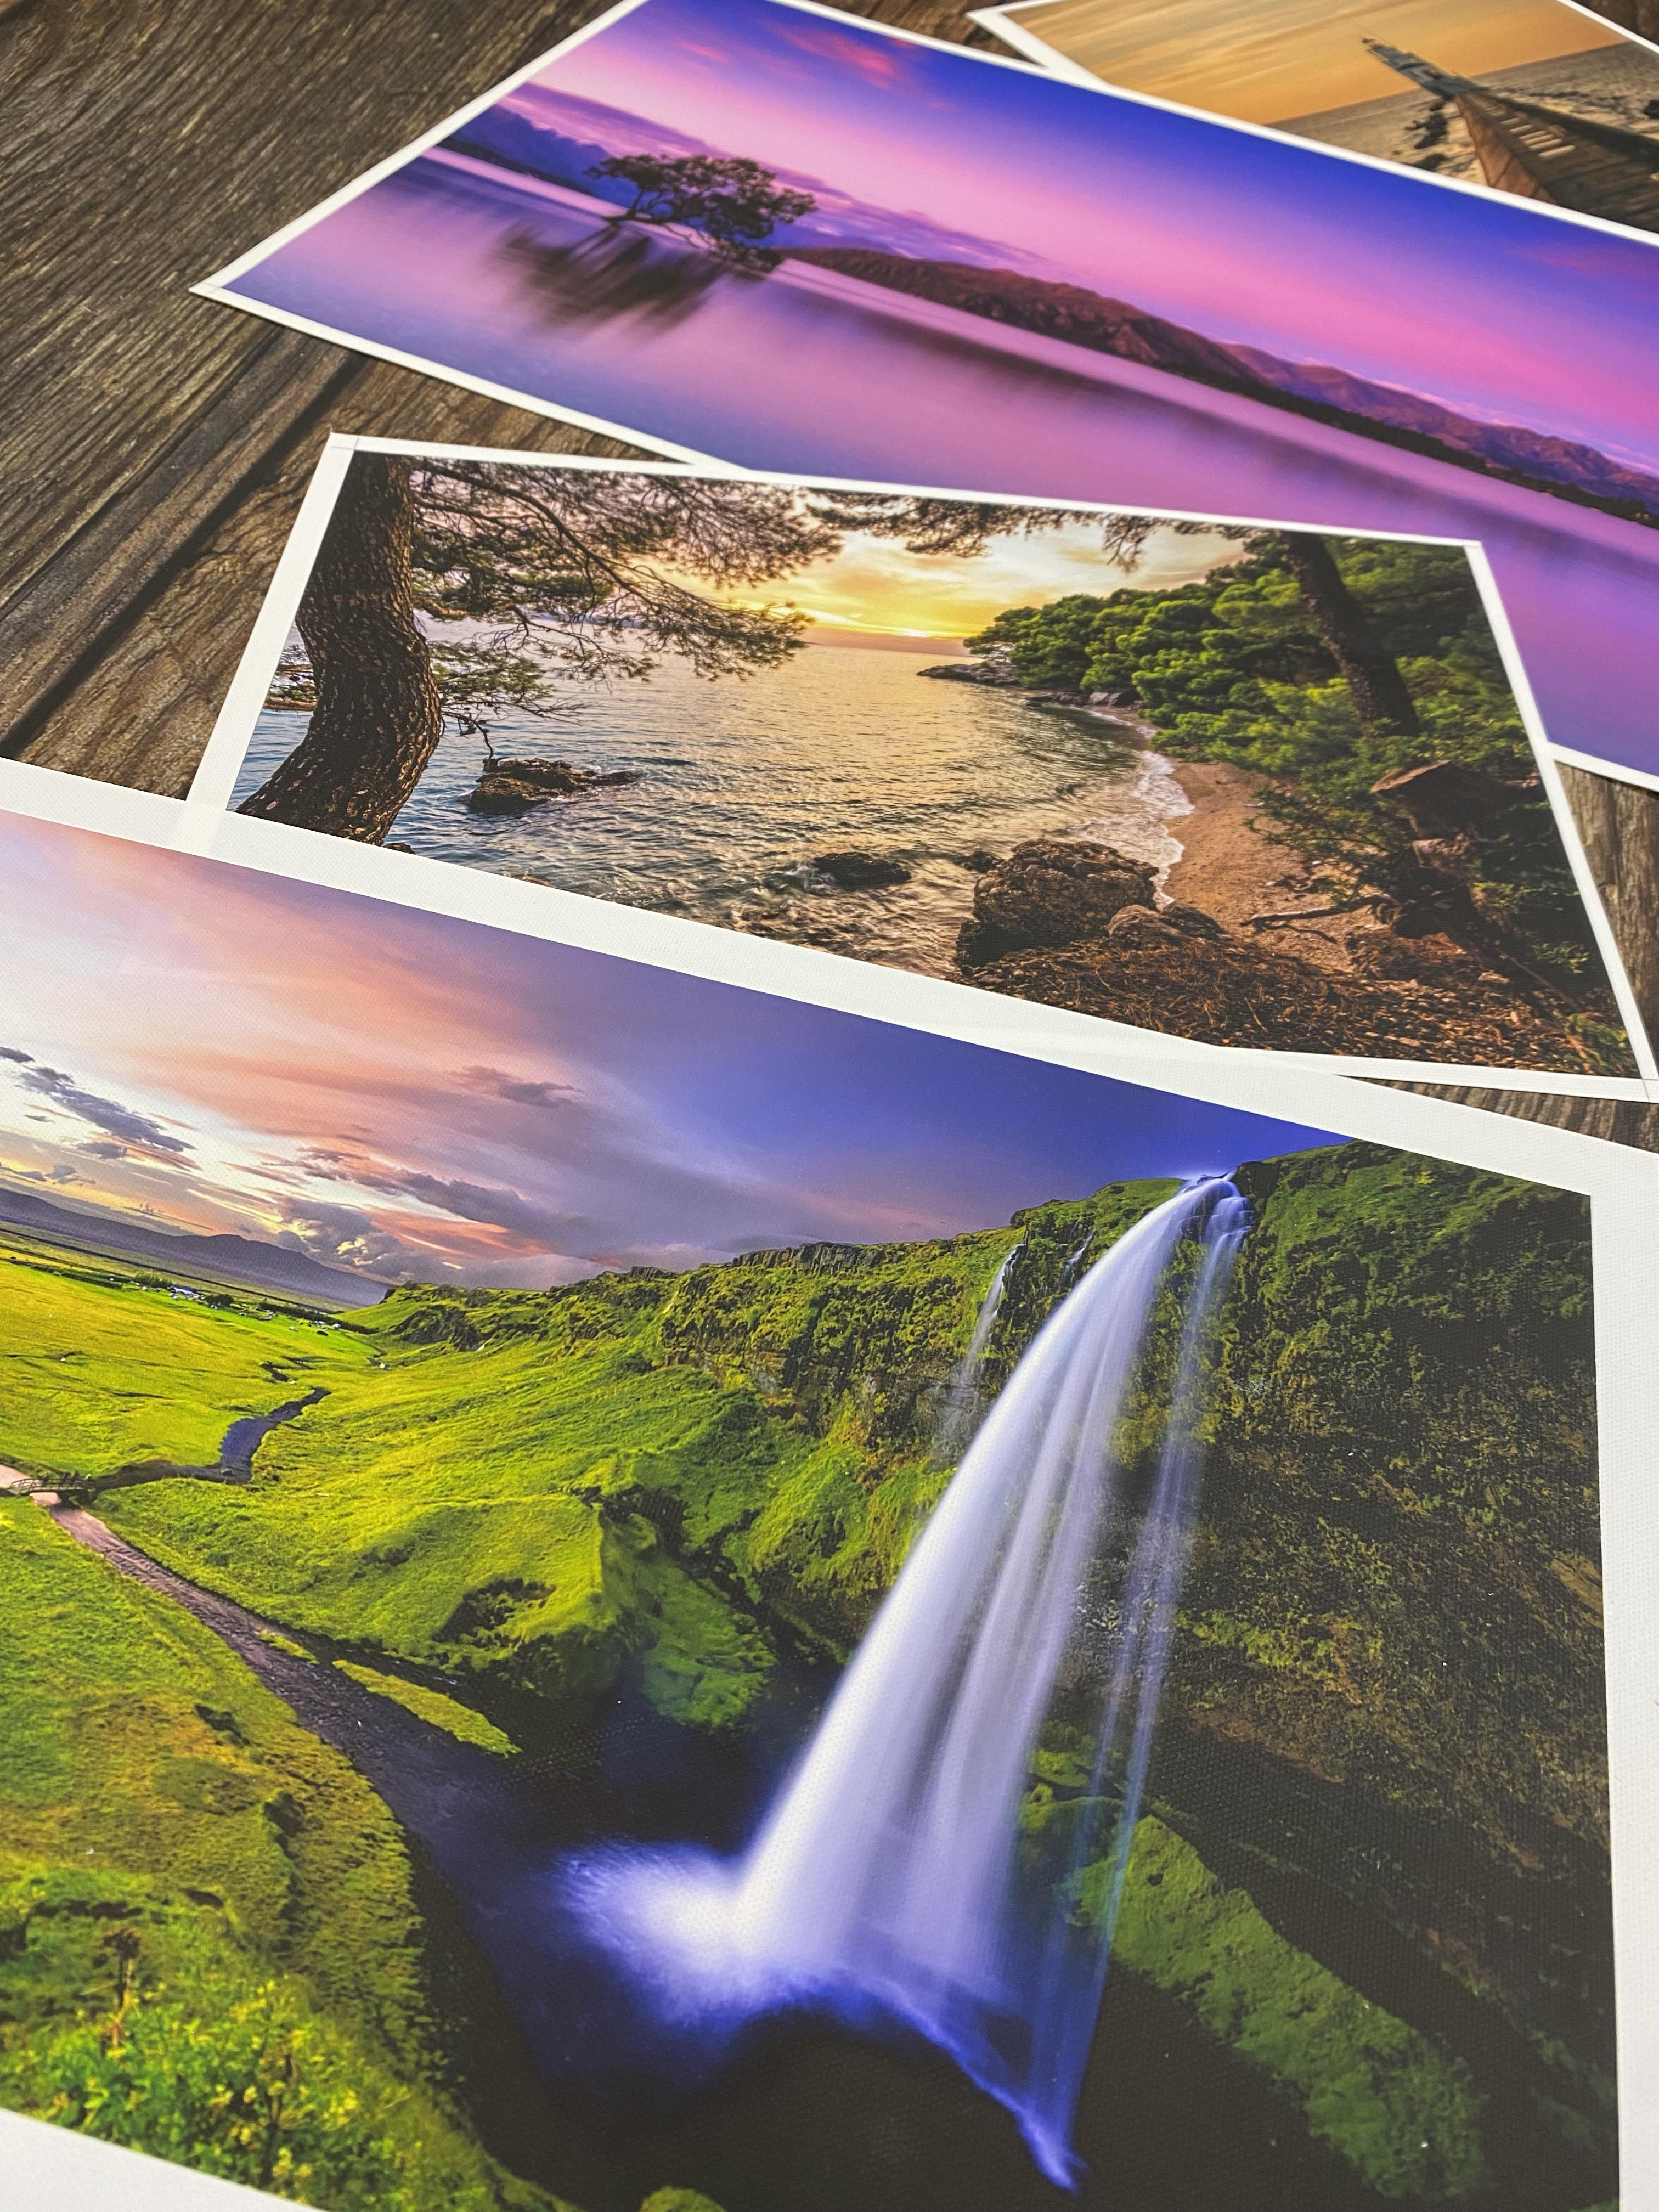 Made to order poster prints for an affordable price with free next day delivery uk